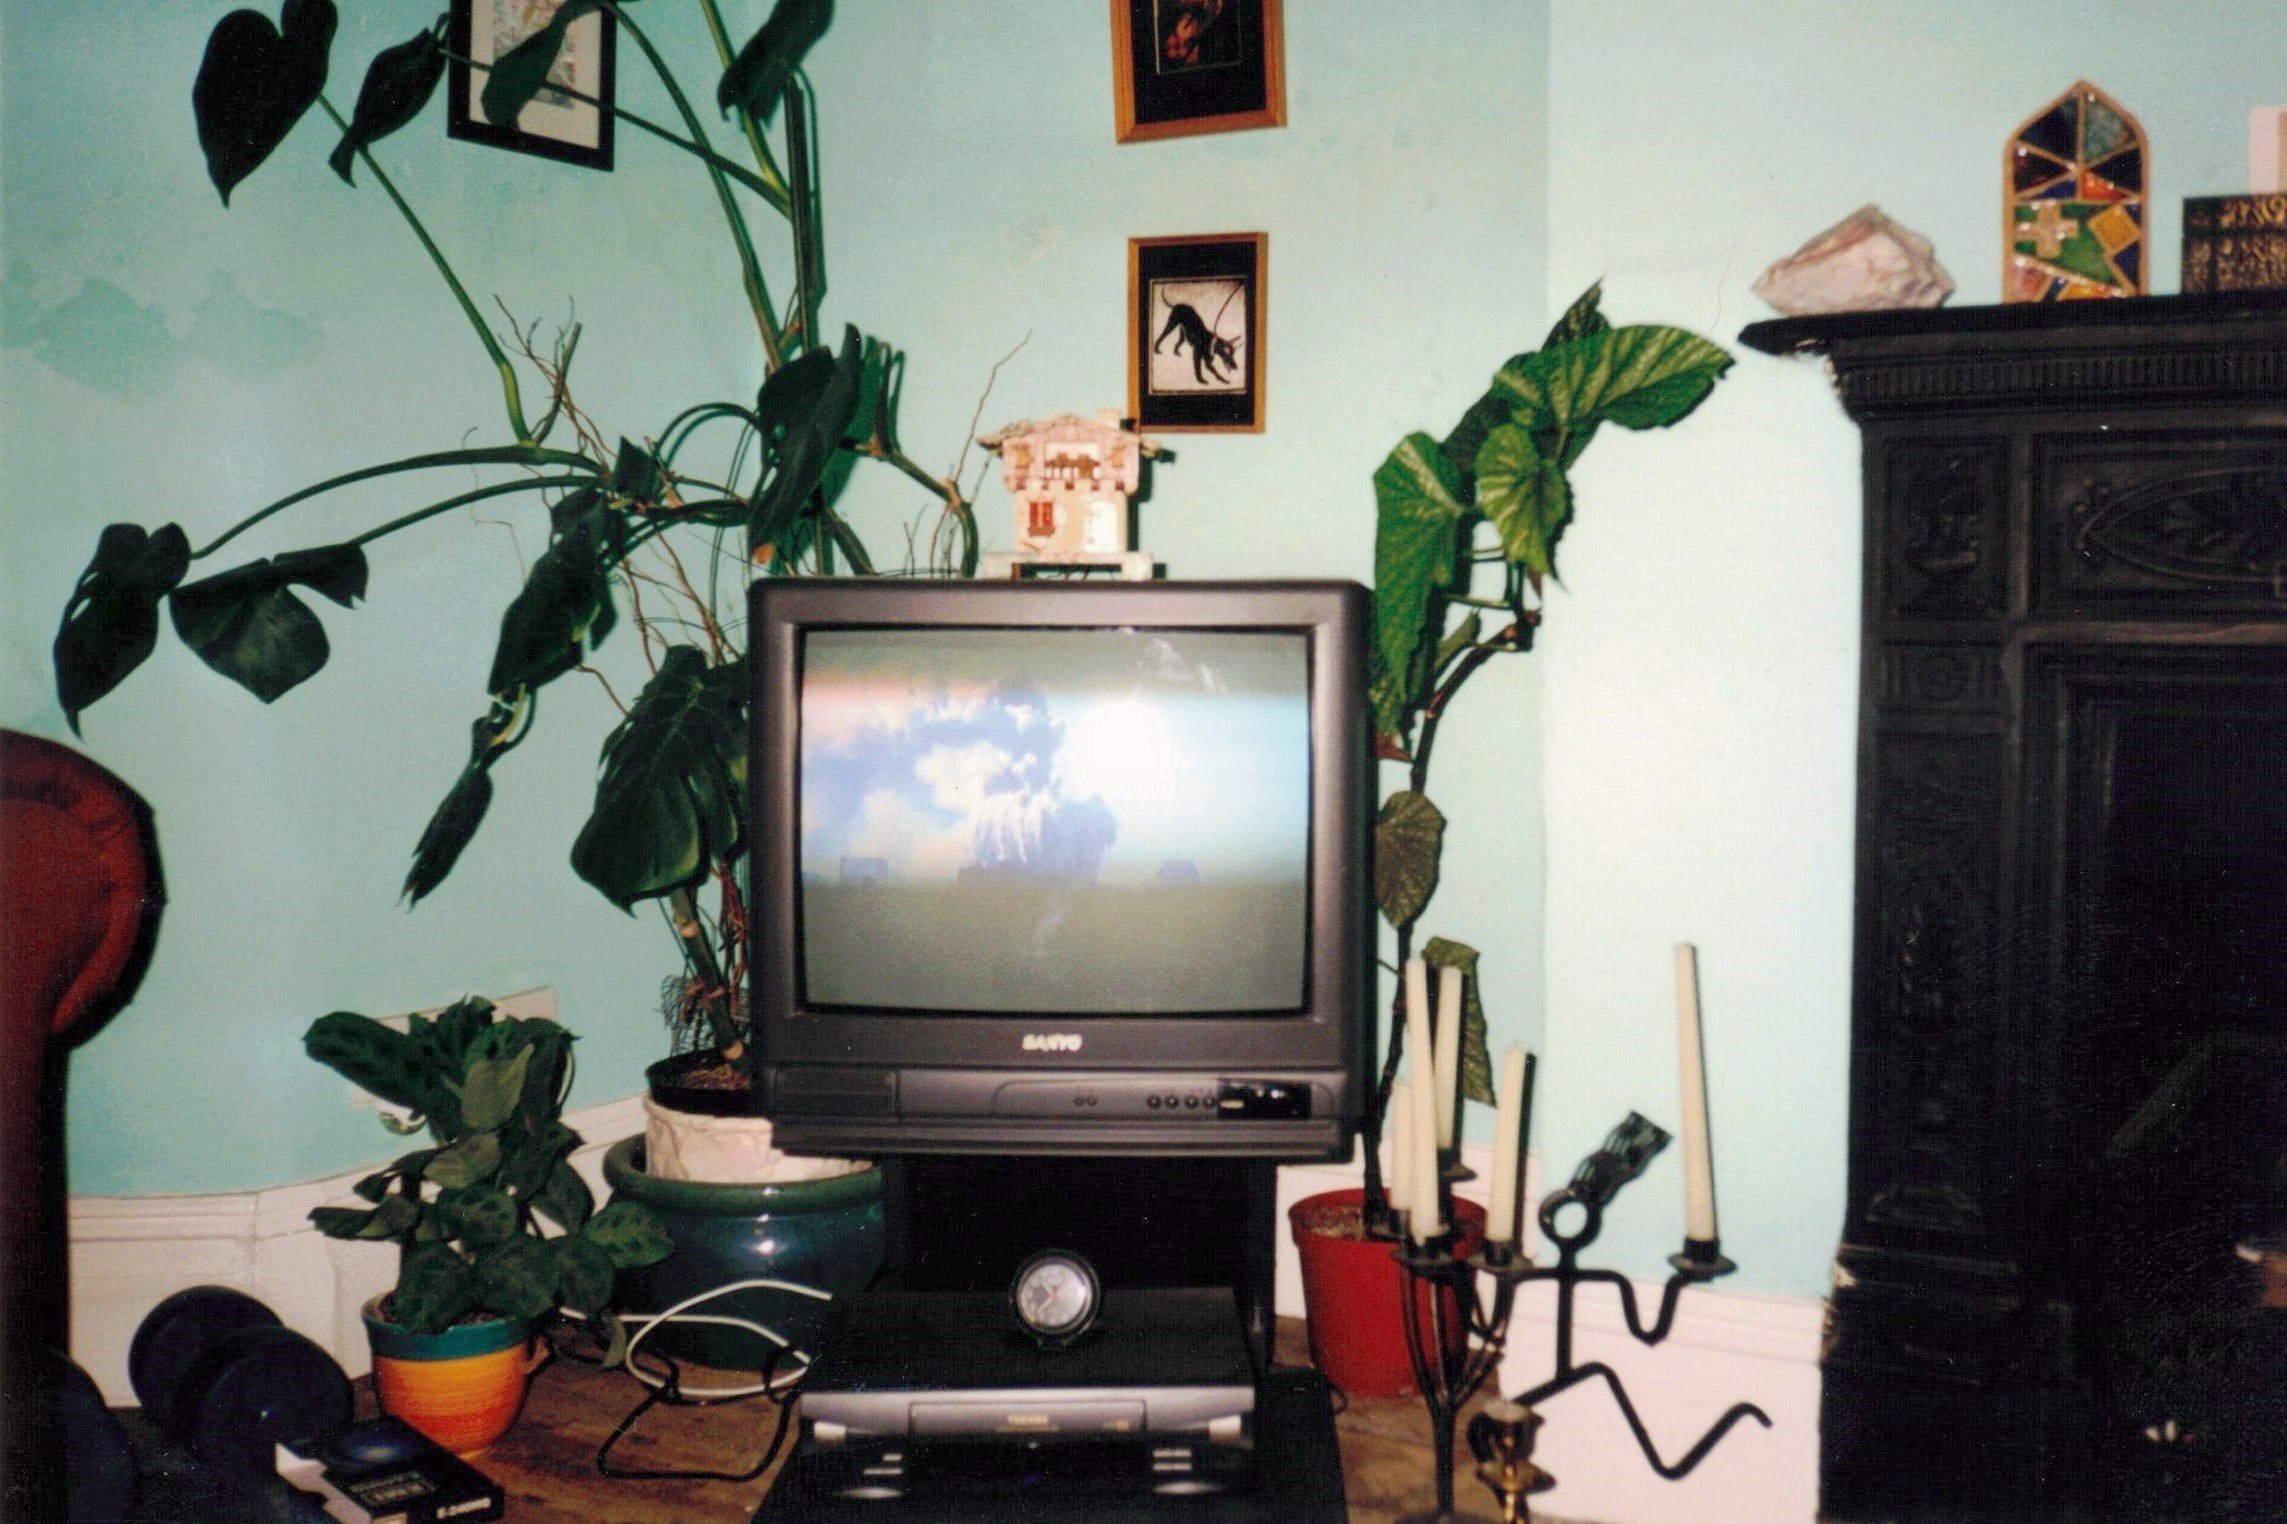 9/11 Pic of my old TV on that terrible day